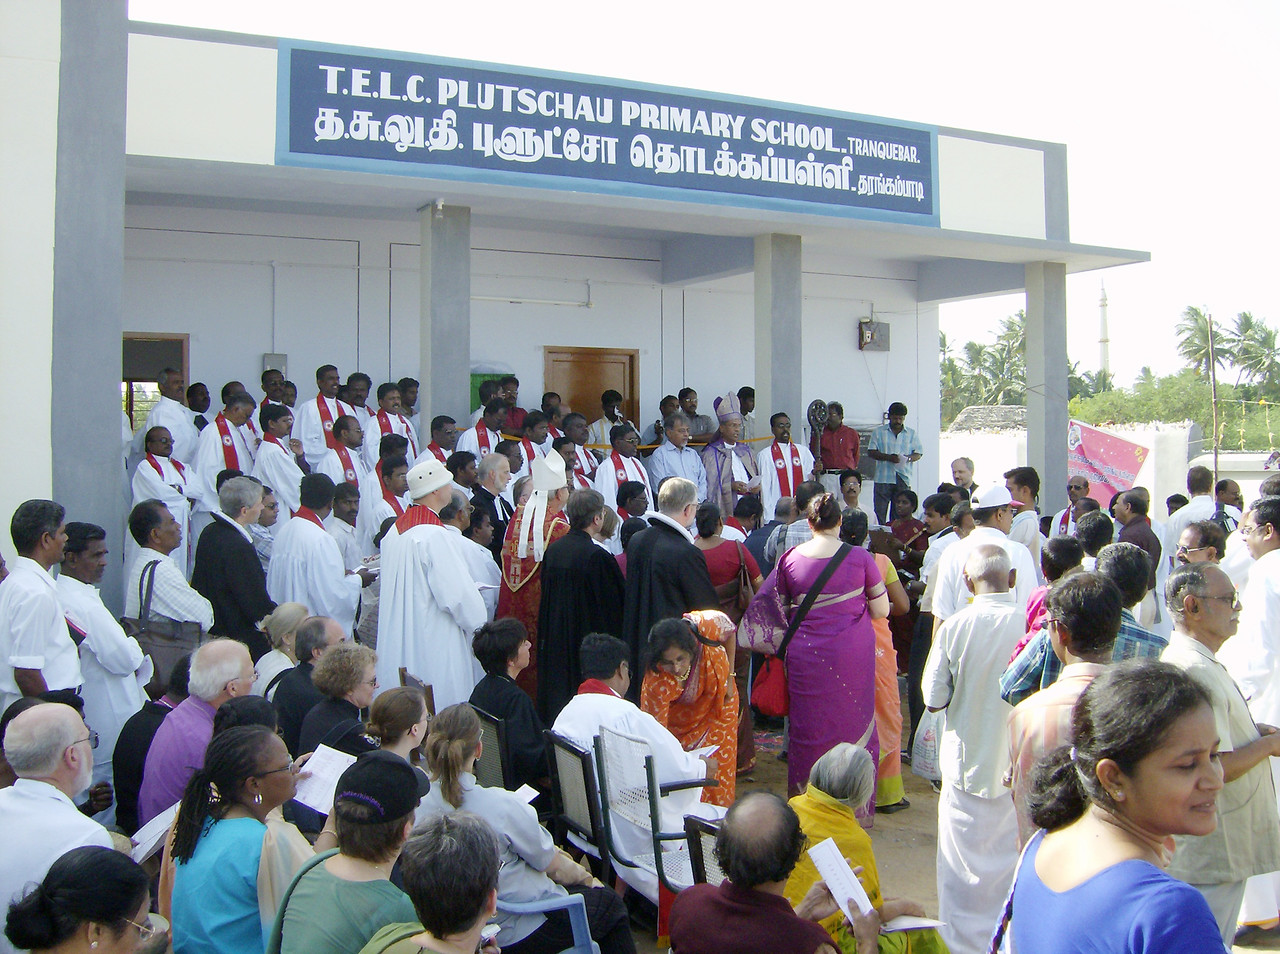 The Tamil Evangelical Lutheran Church preceded Sunday worship July 9 with  the dedication of a new education compound, including the Plutschau Primary School.